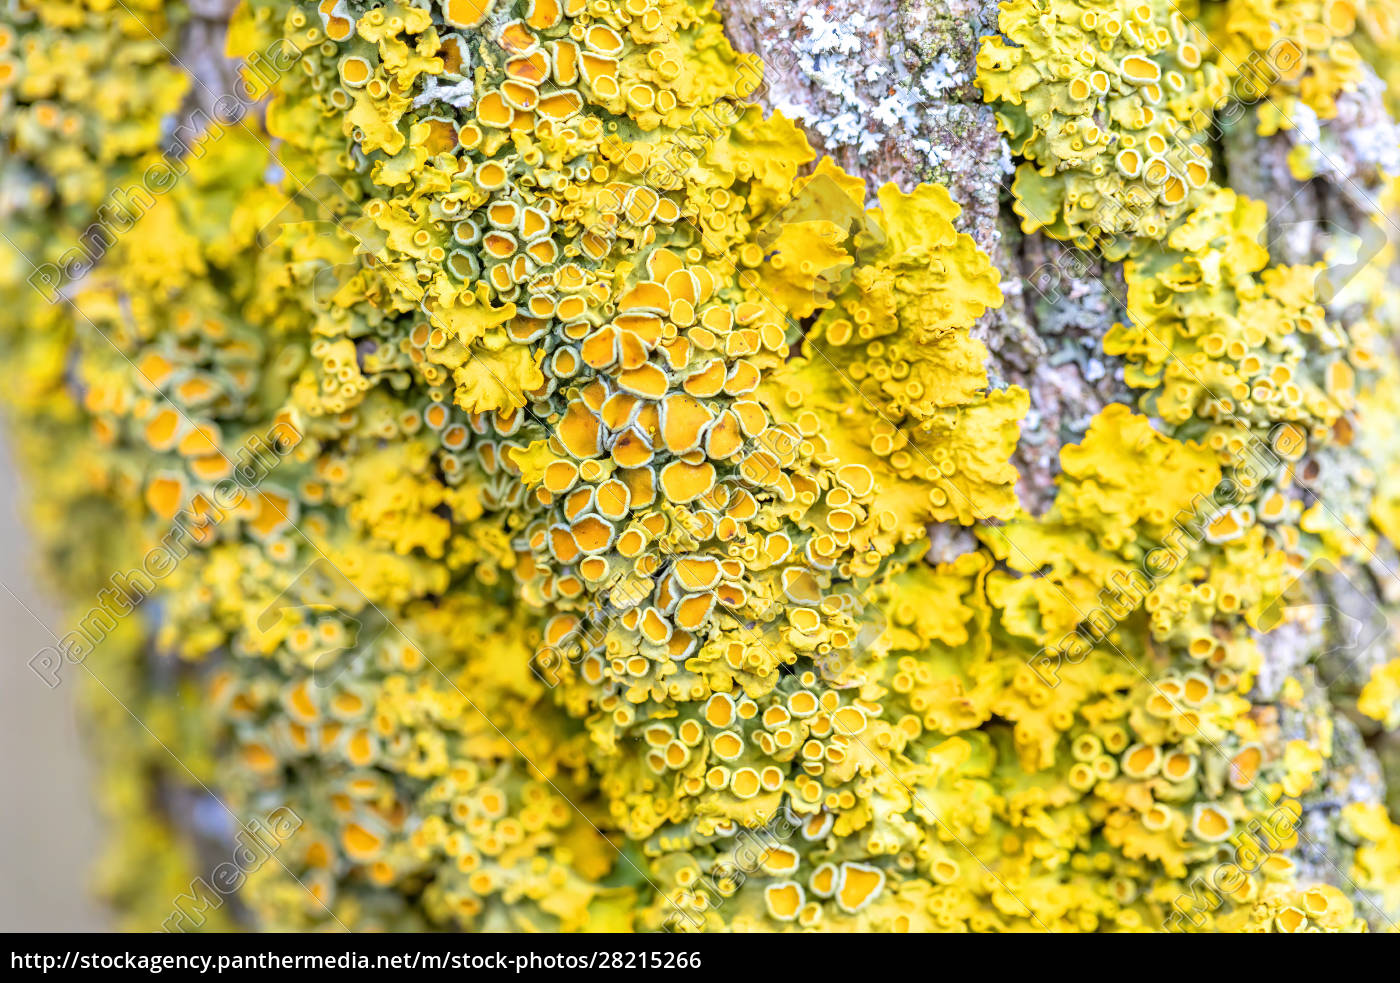 yellow, parasitic, fungus, on, twig, in - 28215266